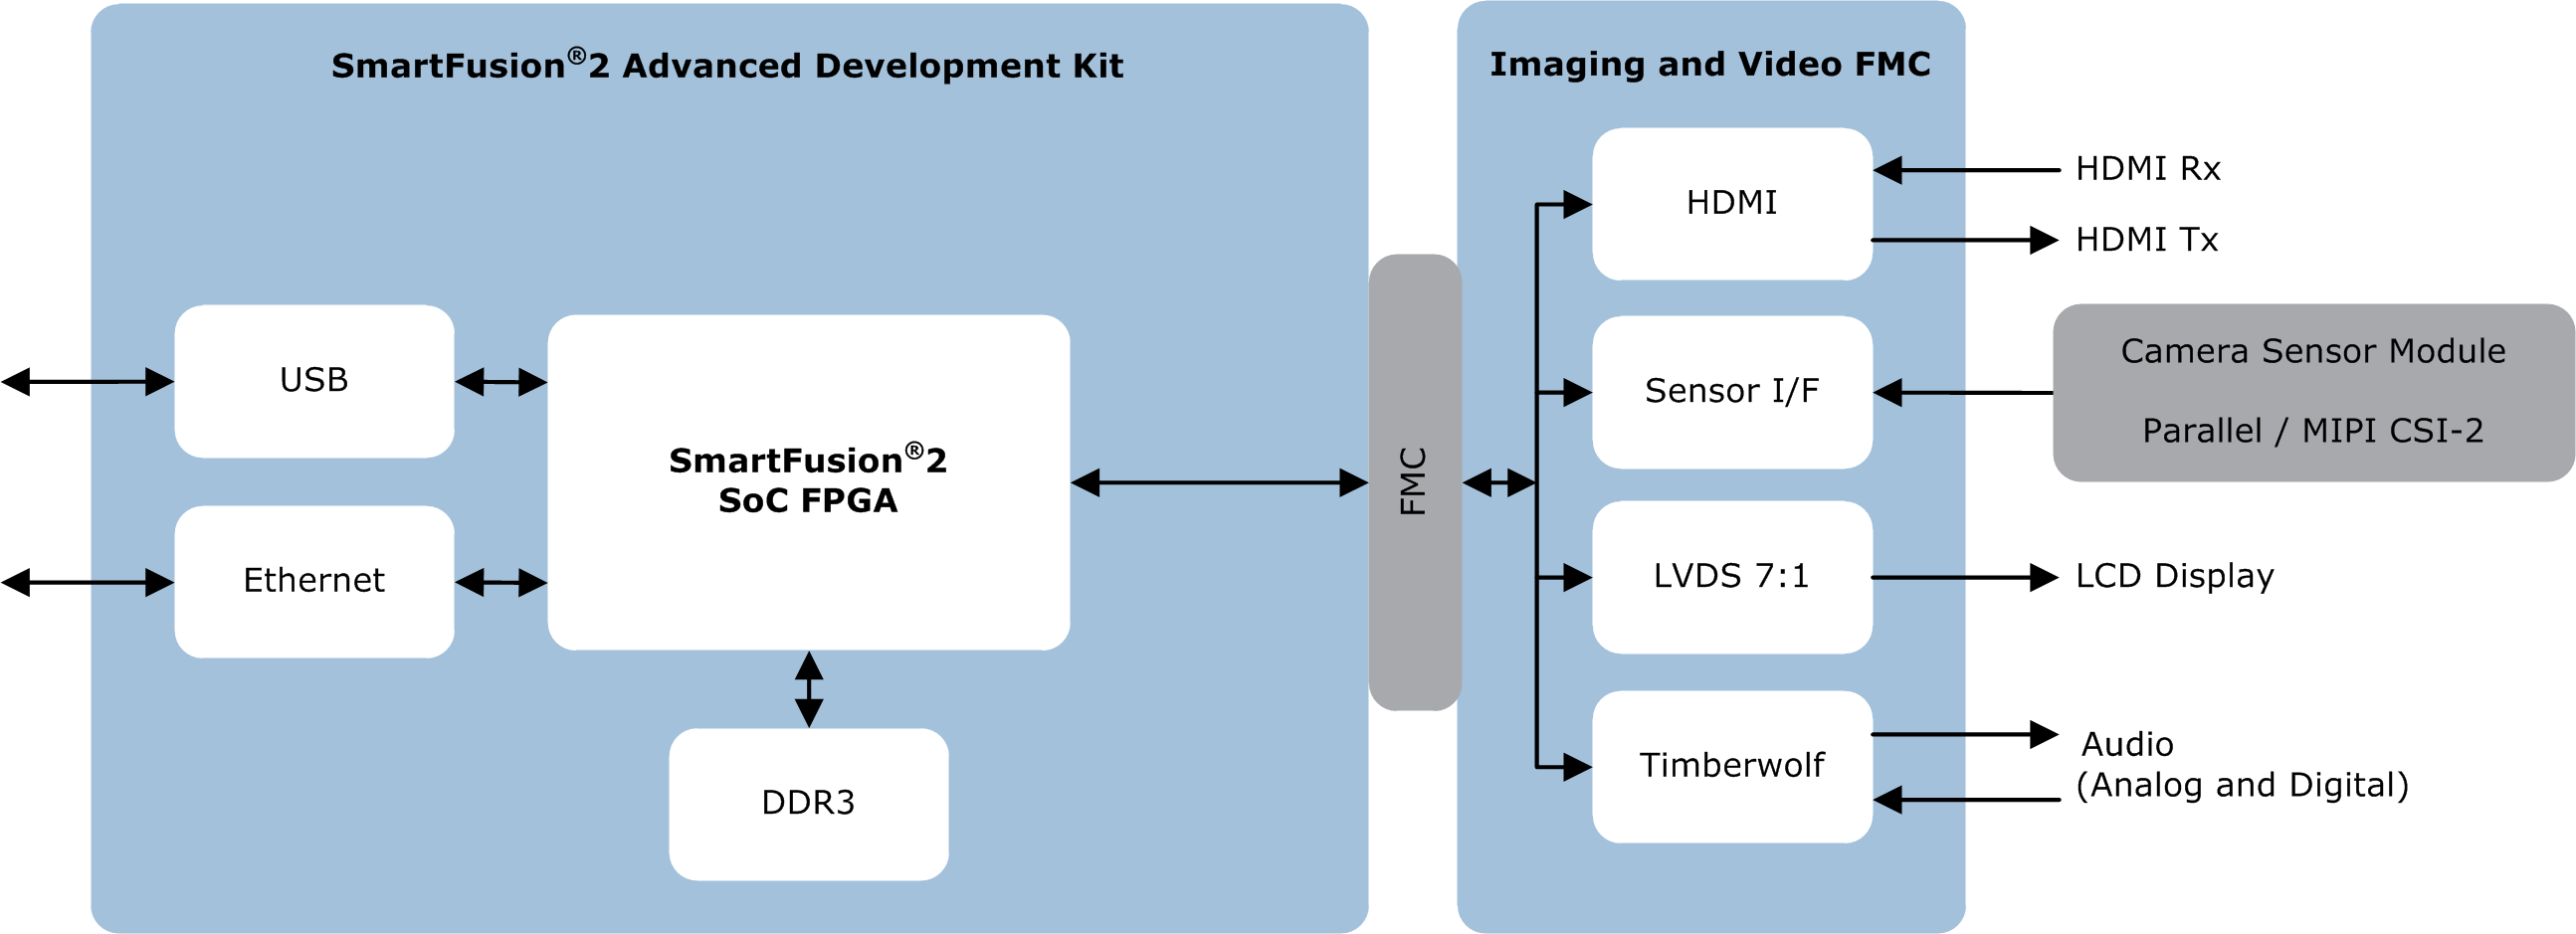 SmartFusion2 Advanced Development Kit and Imaging FMC